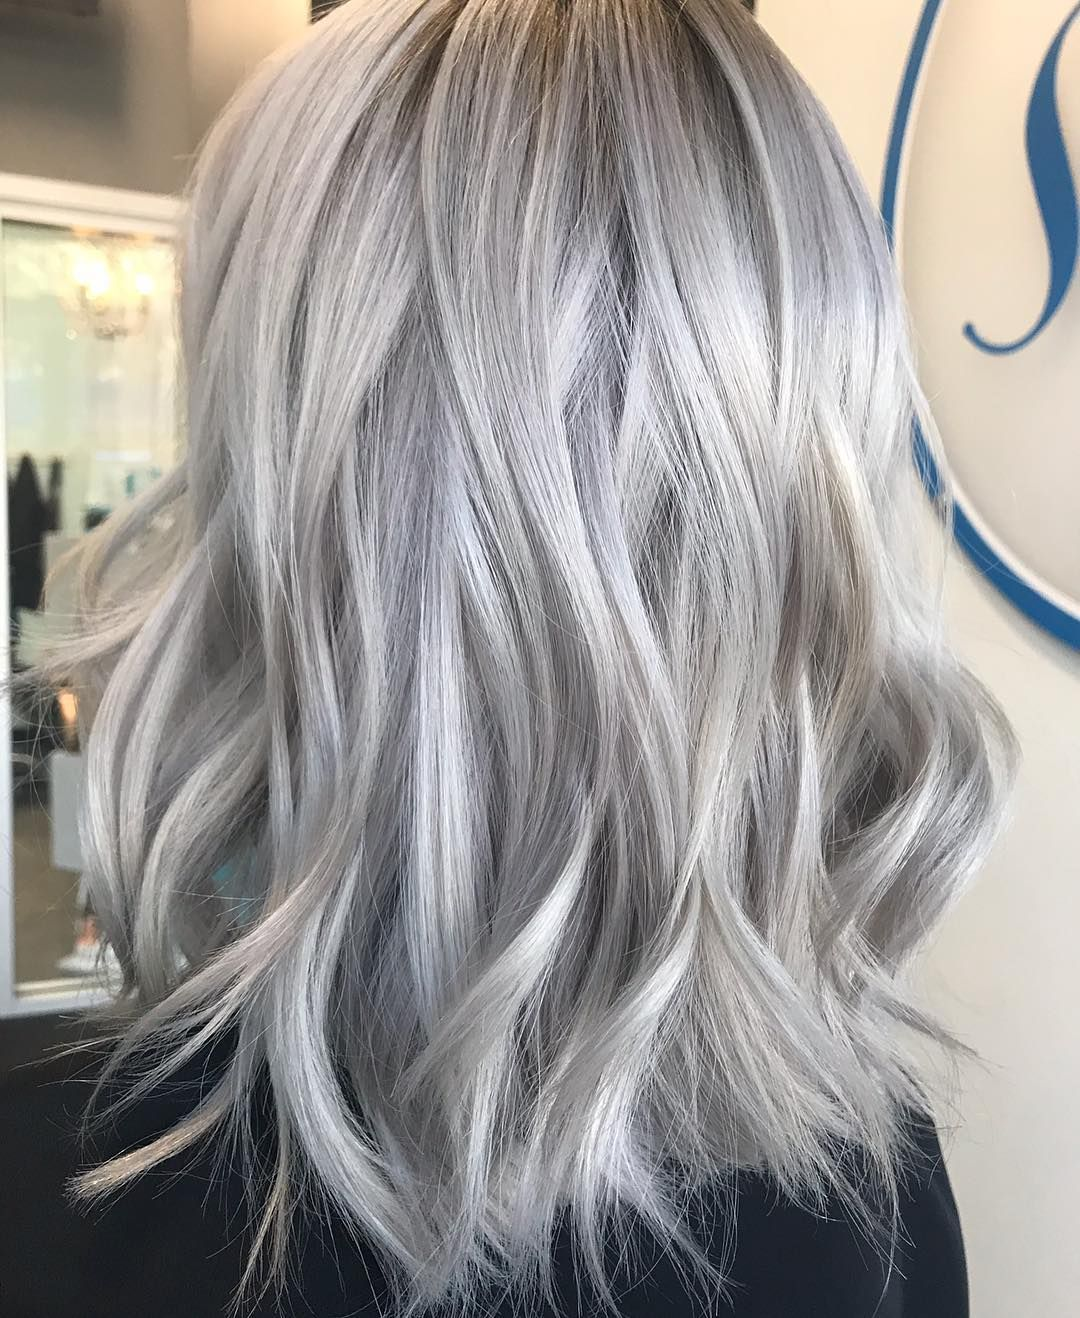 366 Likes, 6 Comments - Grace Joo (@colorwithgrace) on ...